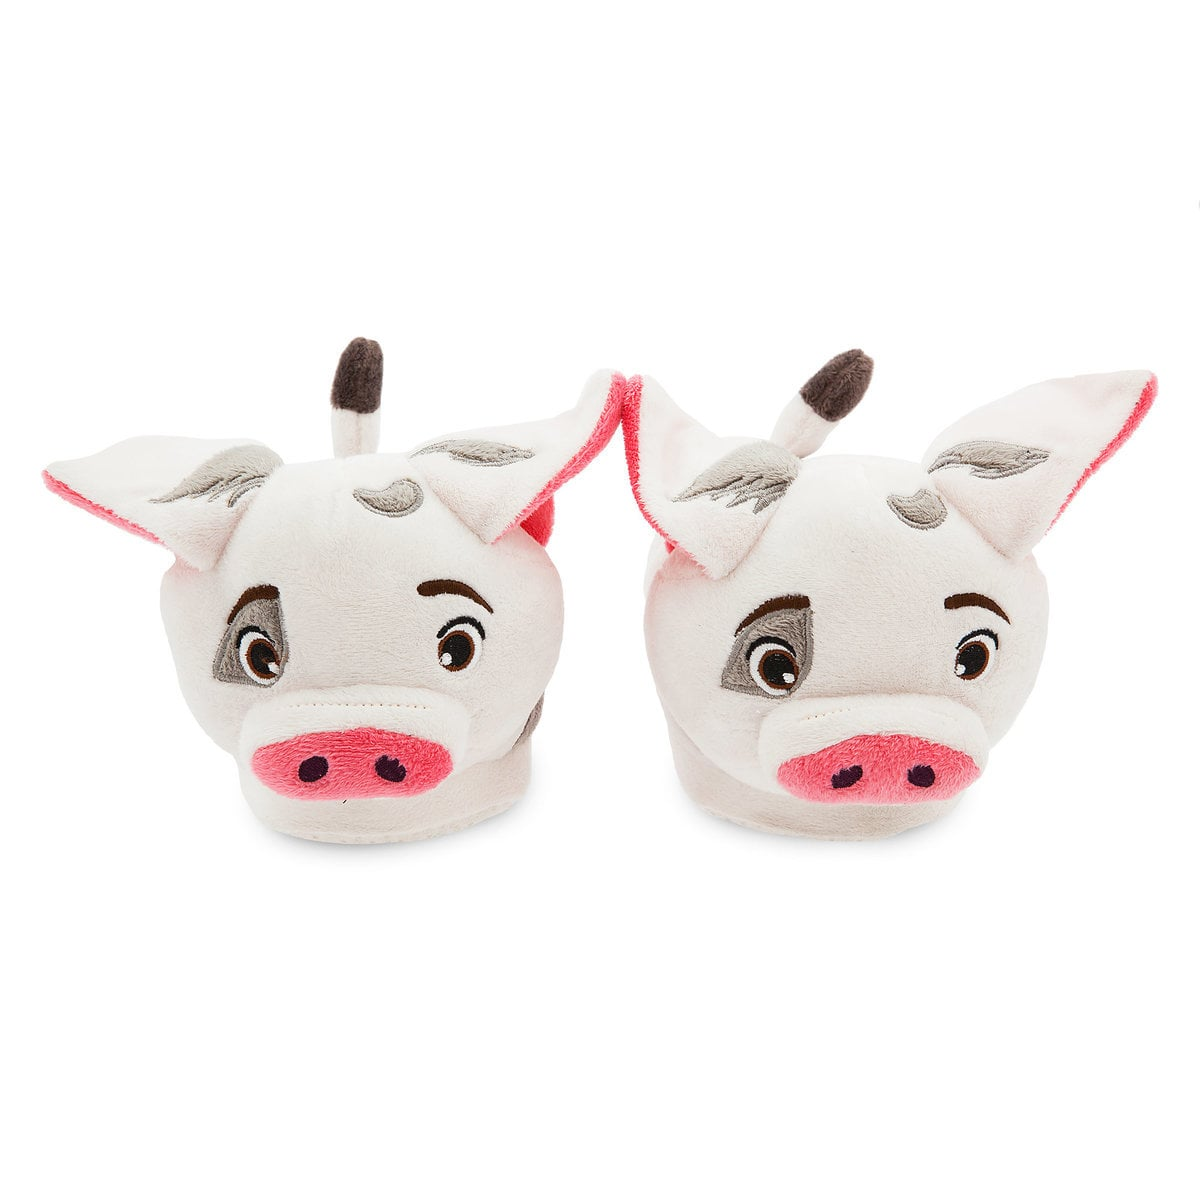 Get comfy with Moana slippers featuring Pua | Top 25 Disney Gift Ideas for Toddlers featured by top US Disney blogger, Marcie and the Mouse